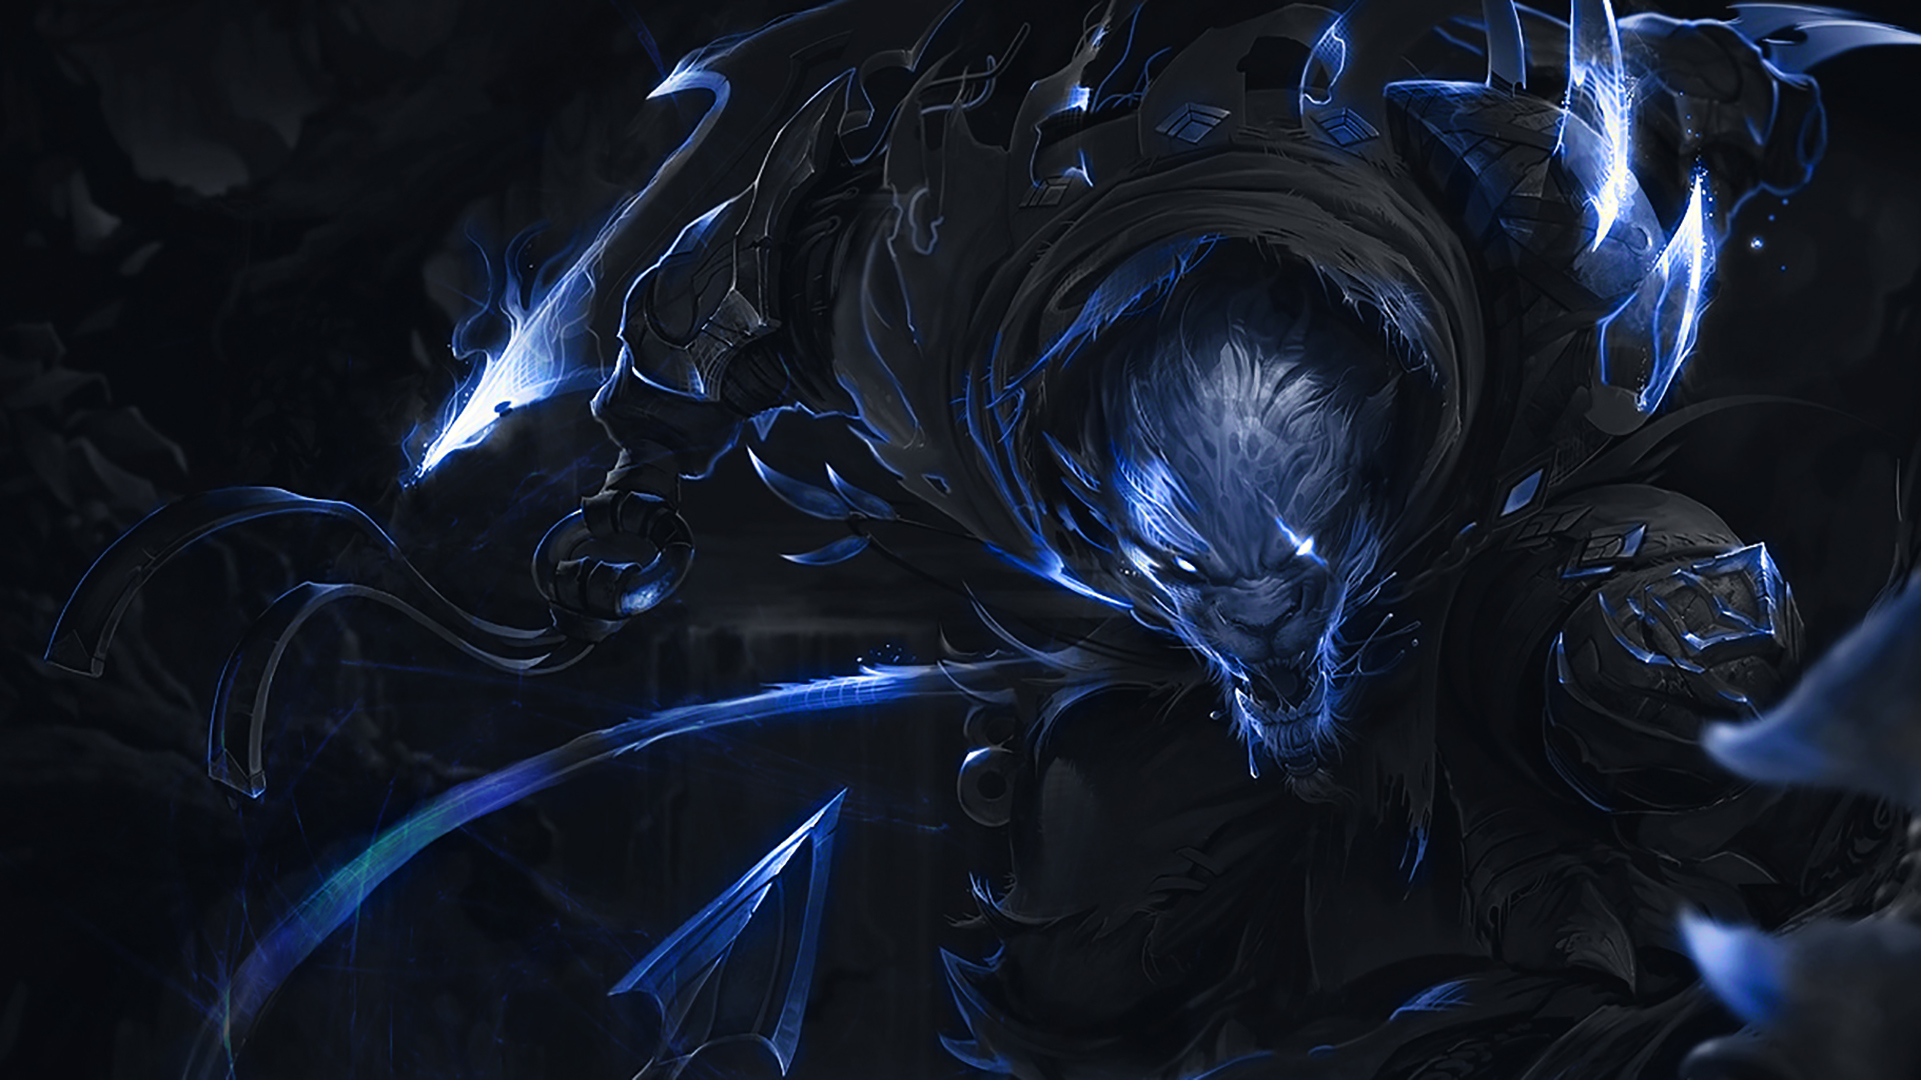 53 Rengar League Of Legends Hd Wallpapers Background